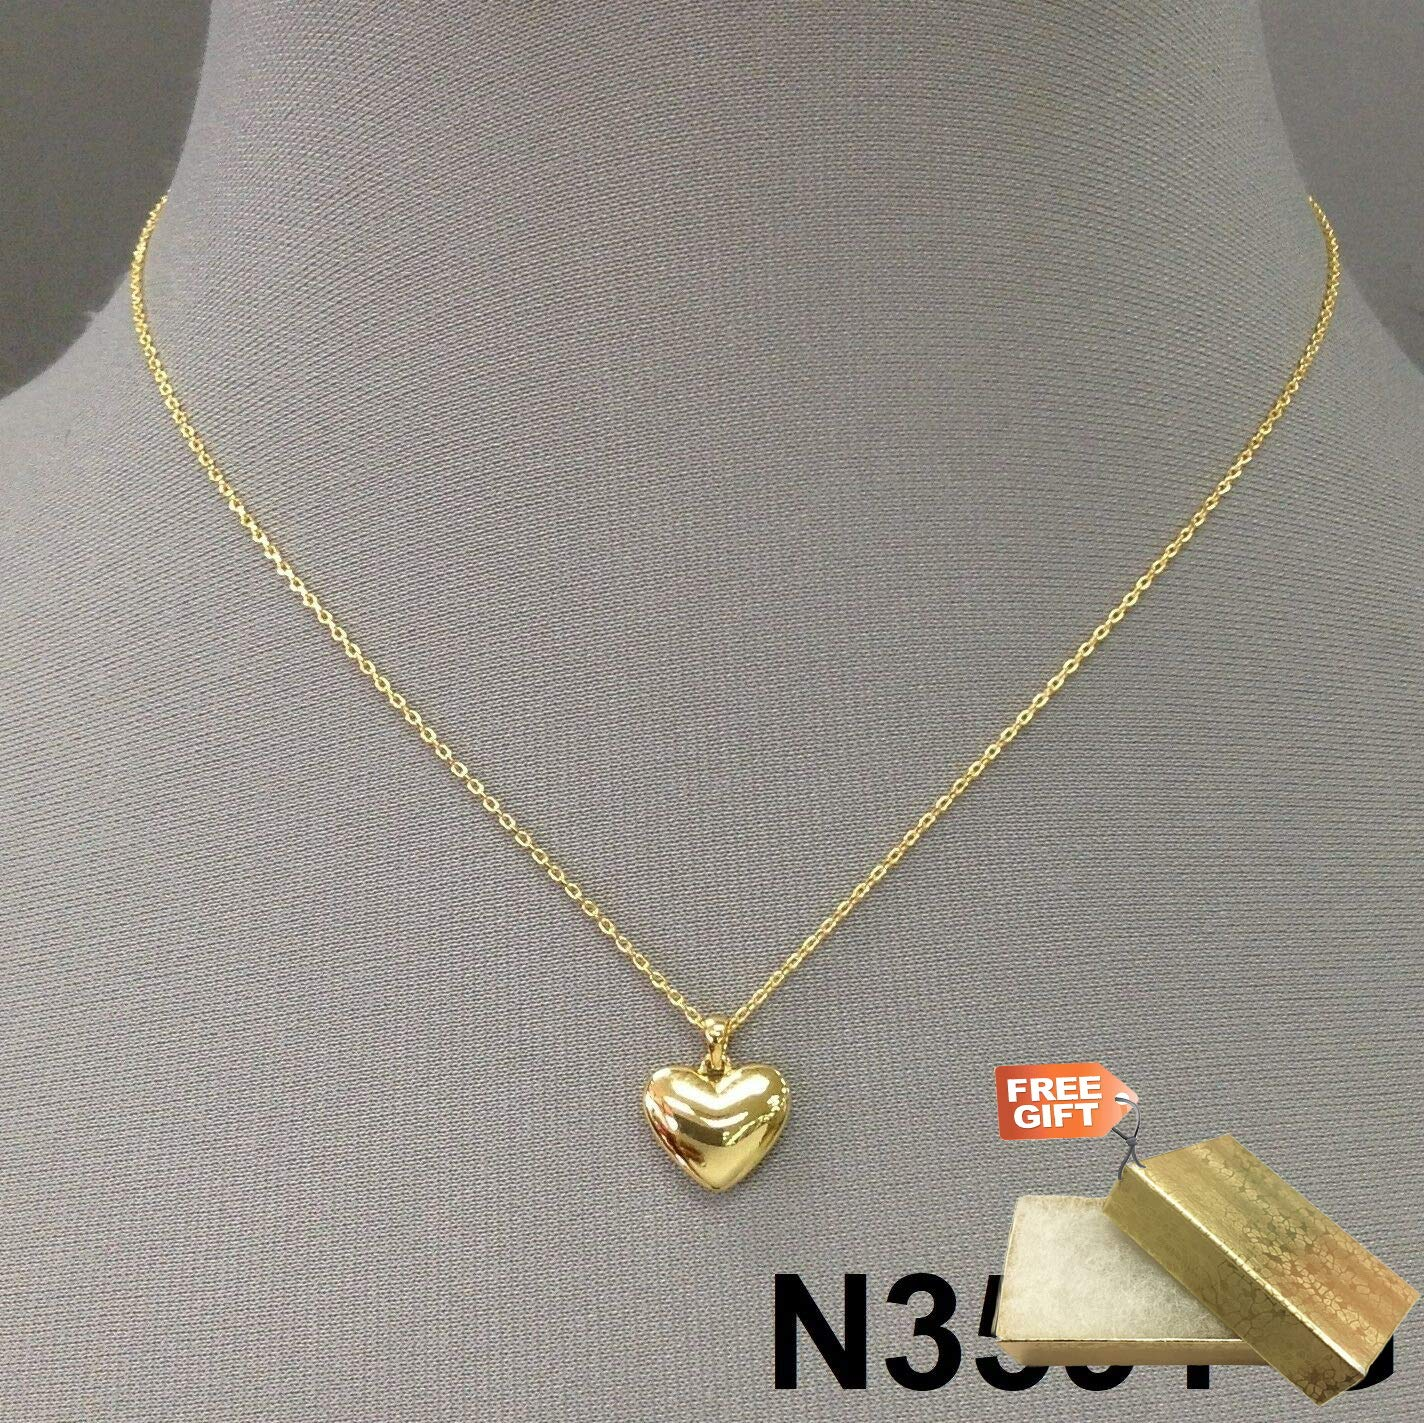 Beautiful Gold Chain Clear Rhinestone Heart Charm Pendant Necklace With Earrings